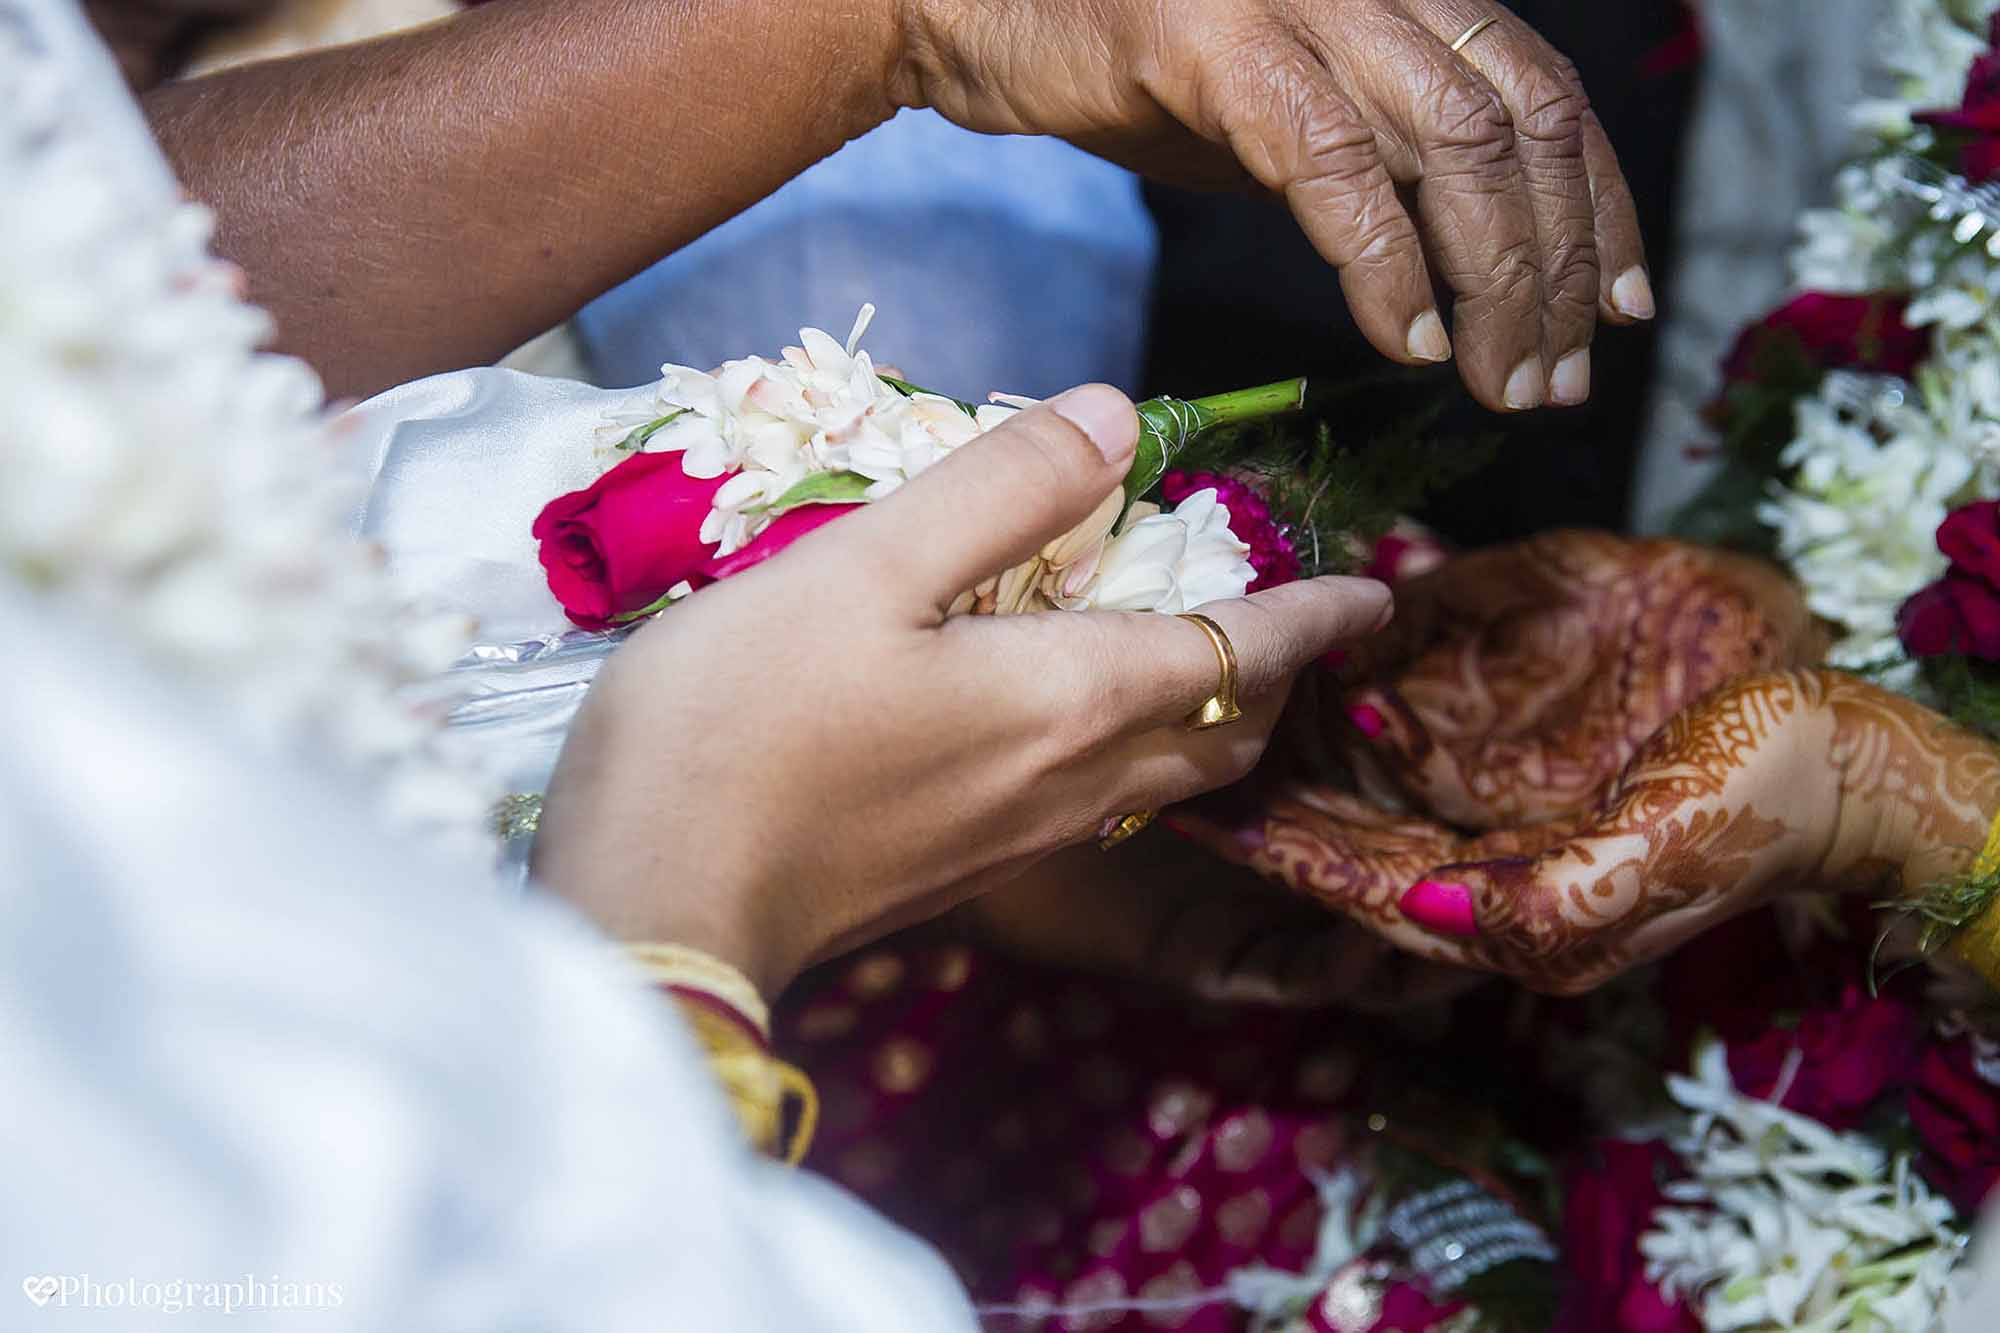 Bengali_Wedding_Photography_Kolkata_Photographians_129